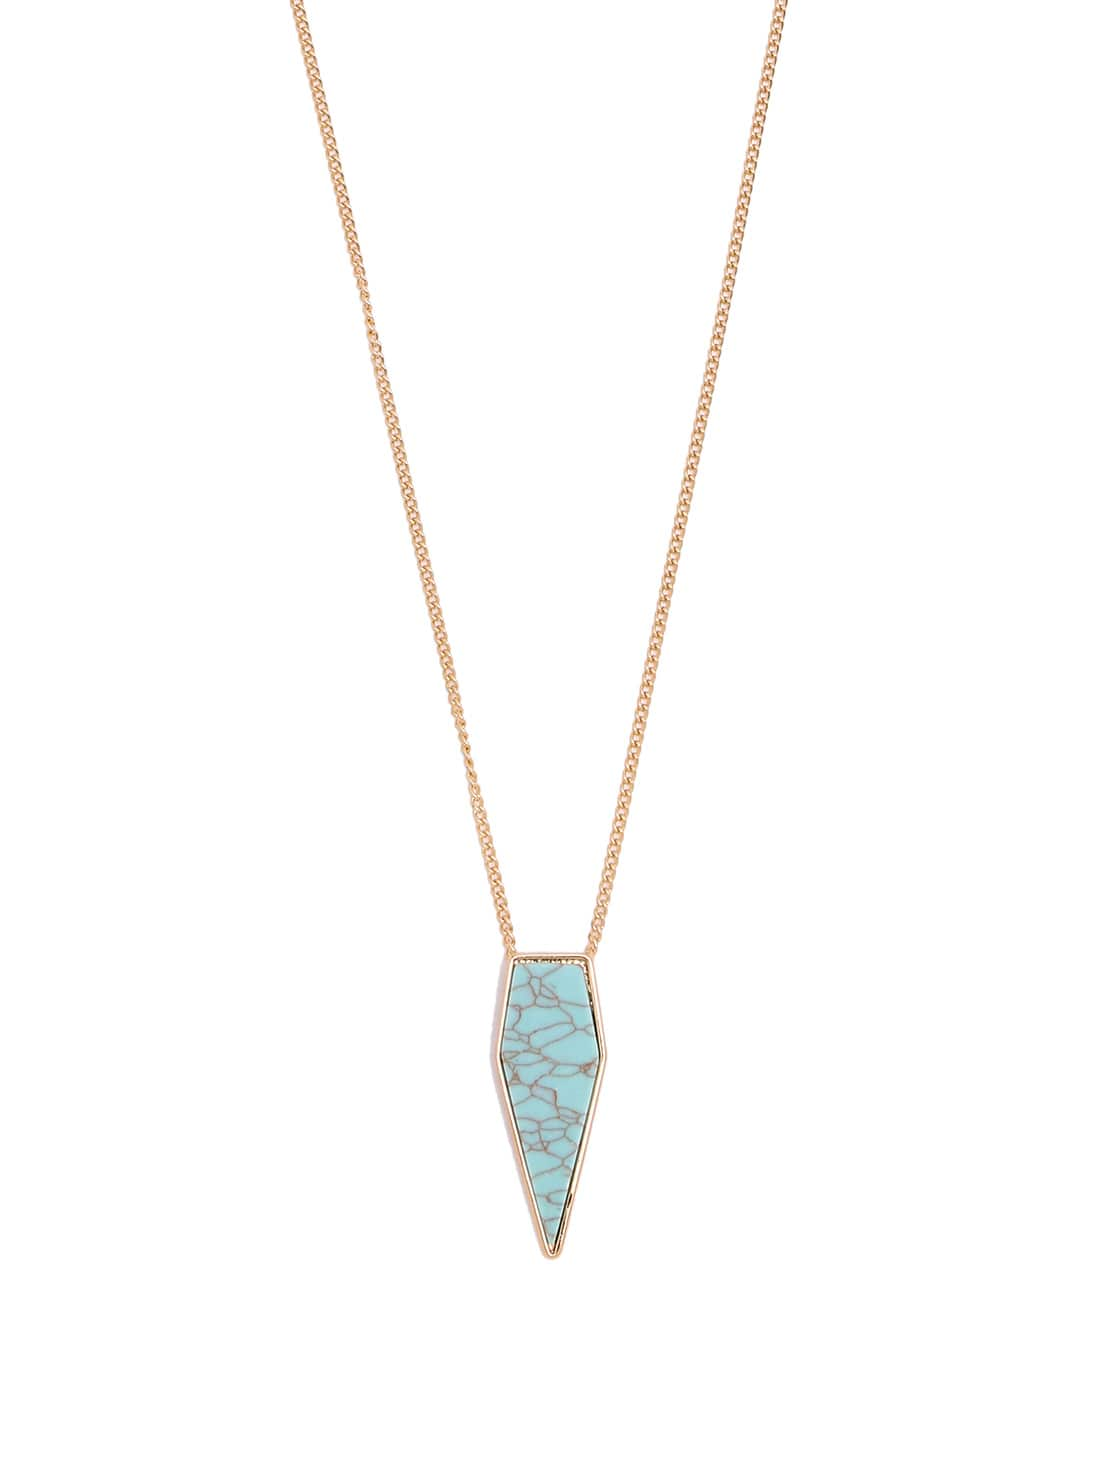 Turquoise Water-drop Pendant Golden Necklace